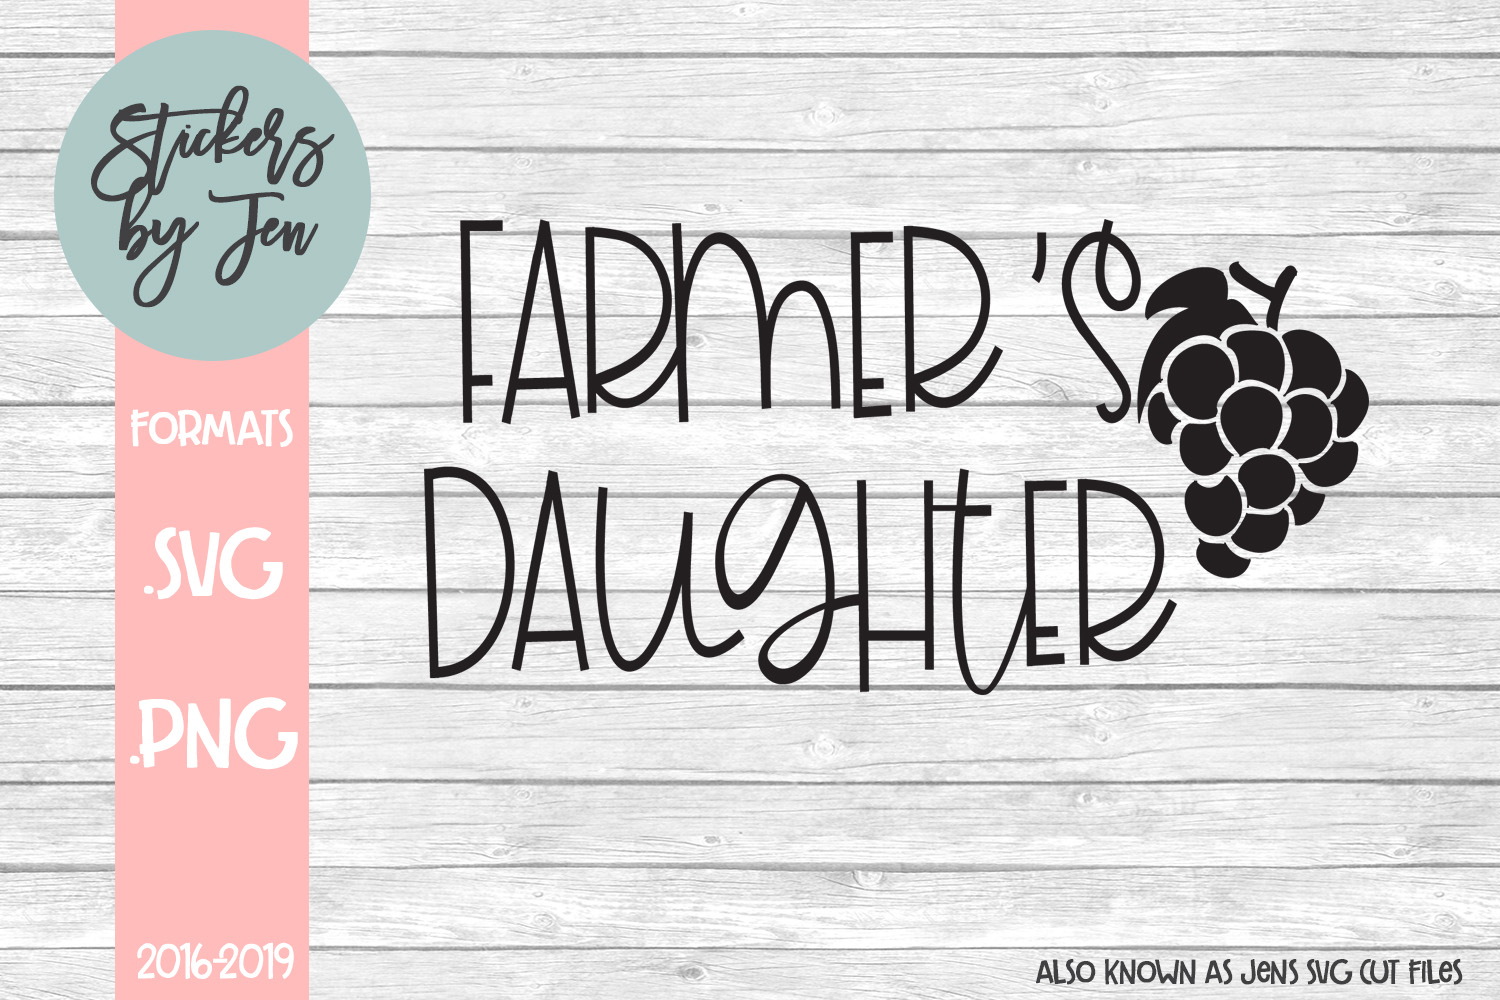 Download Free Farmers Daughter Svg Graphic By Stickers By Jennifer Creative for Cricut Explore, Silhouette and other cutting machines.